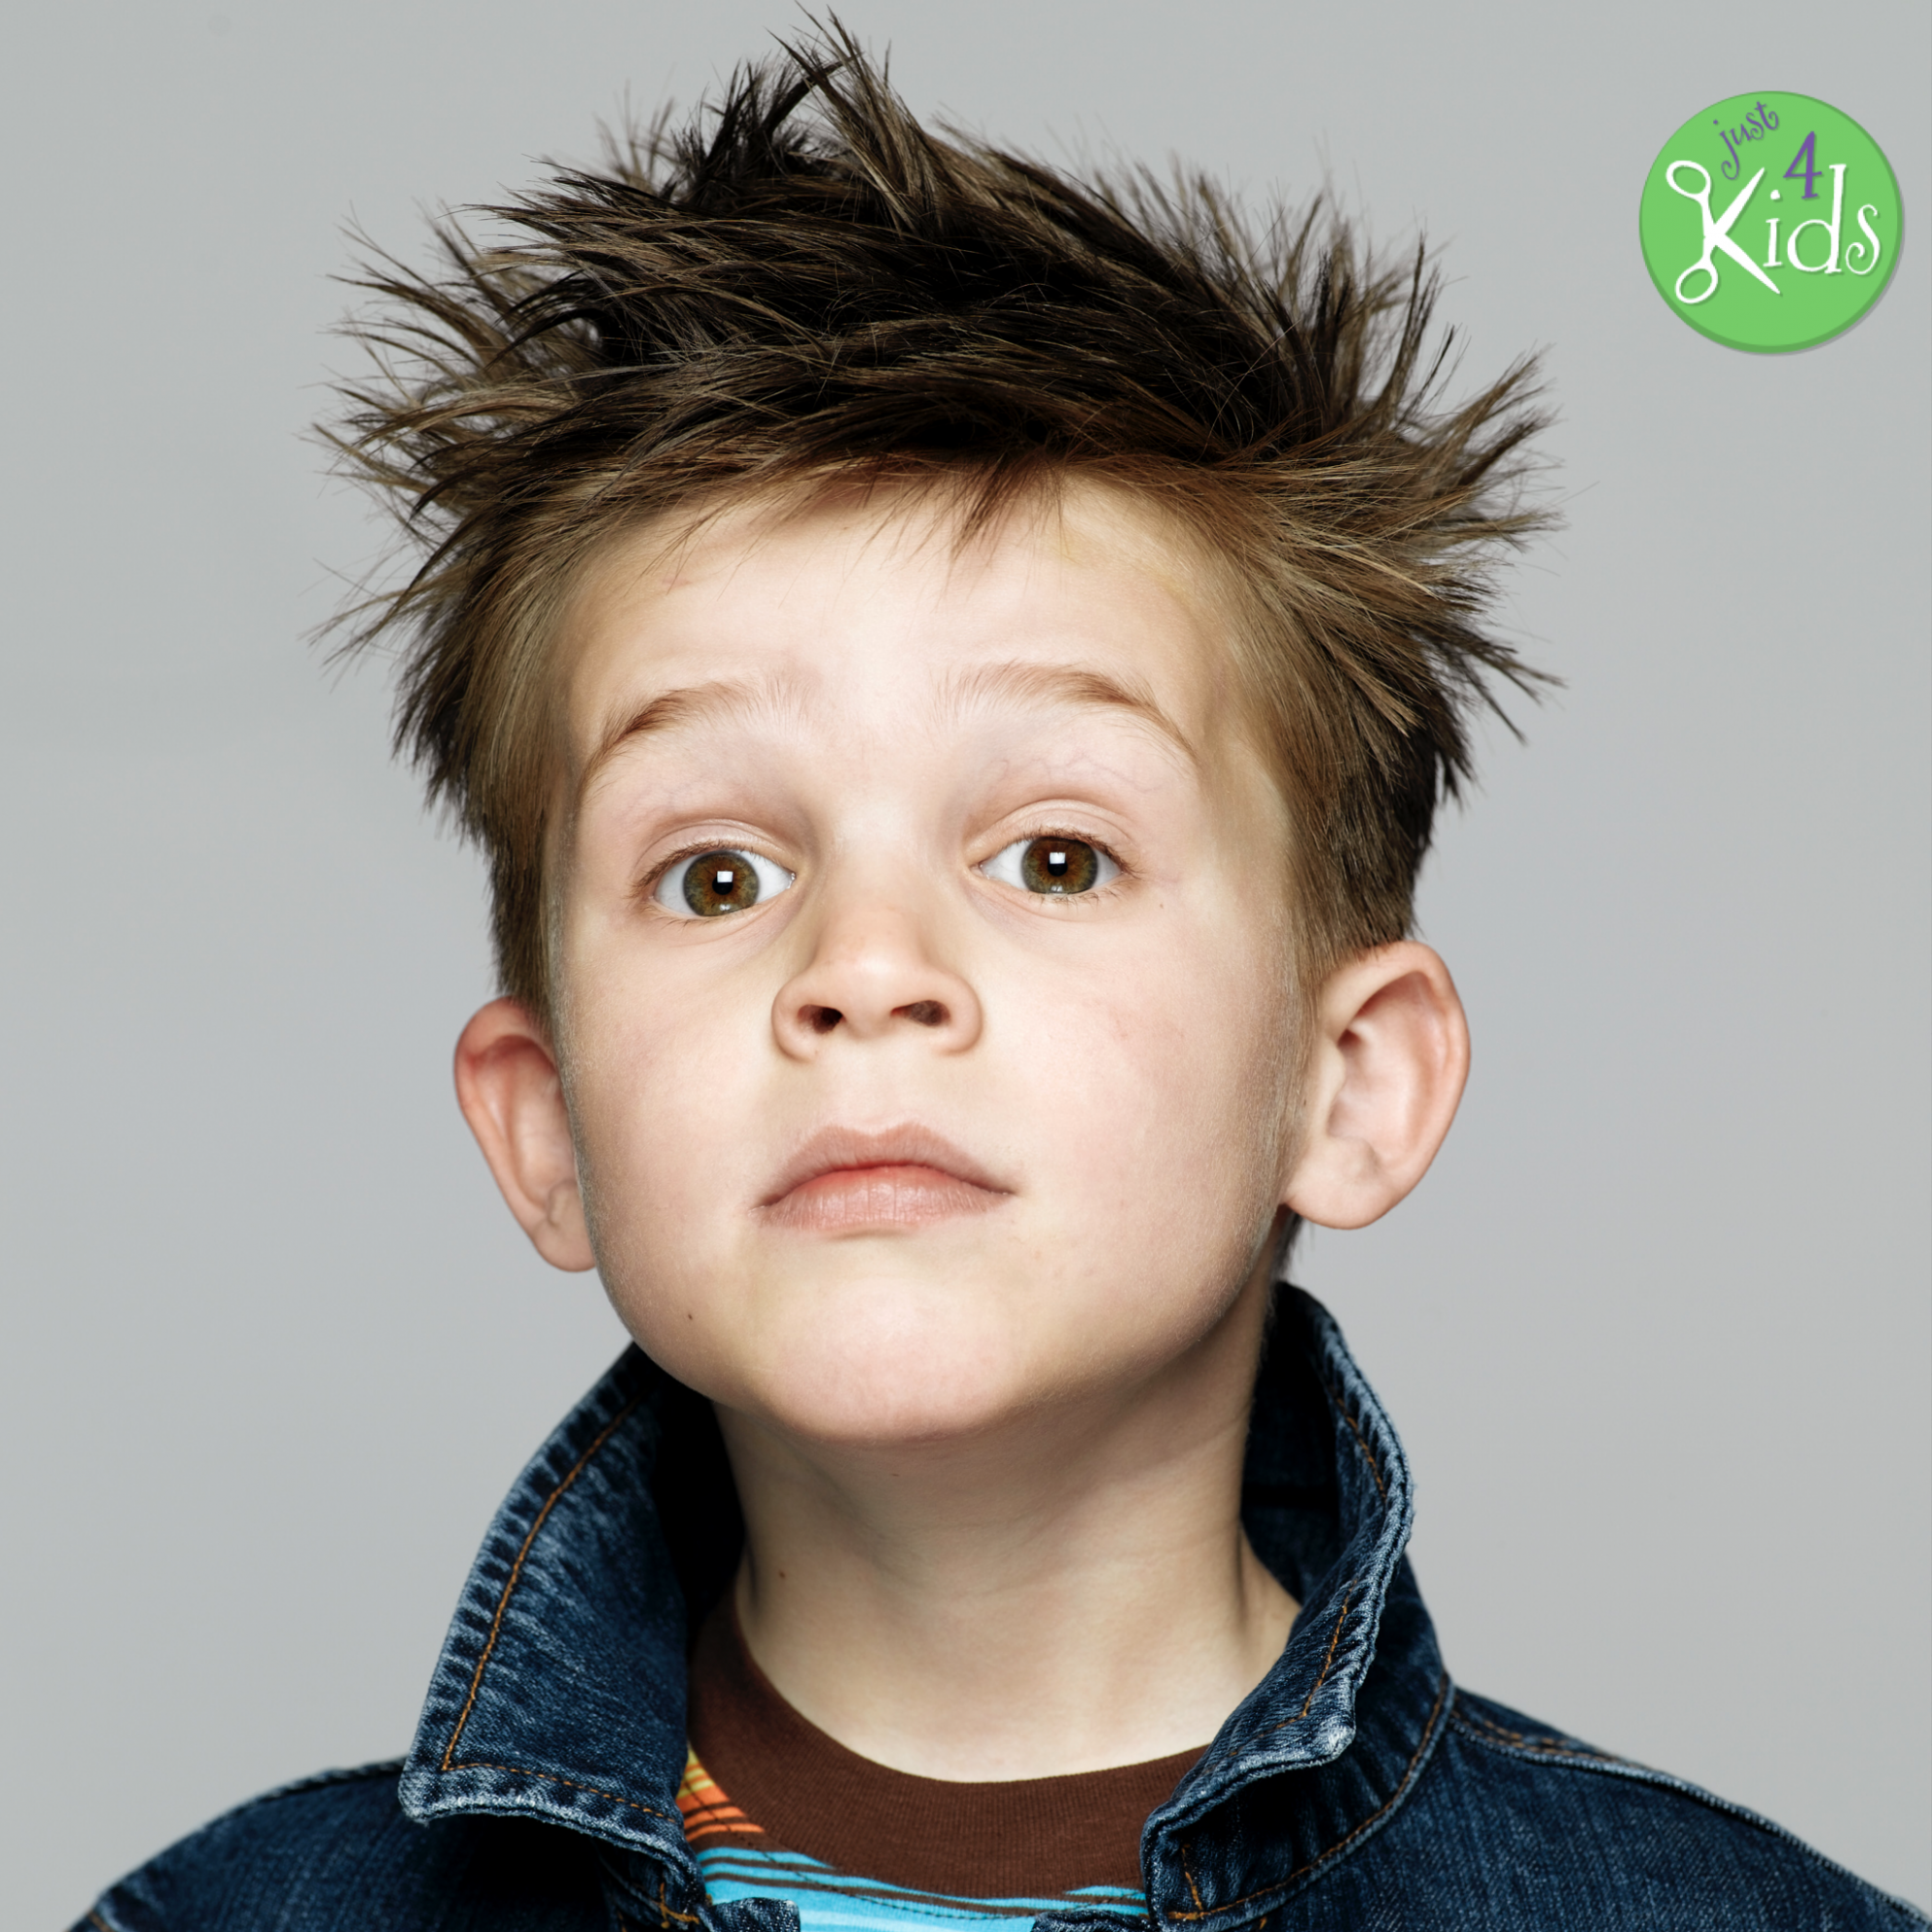 Top Kids Hairstyles 11 Long Hairstyles For Boys Long Hair Kids Long Hairstyles